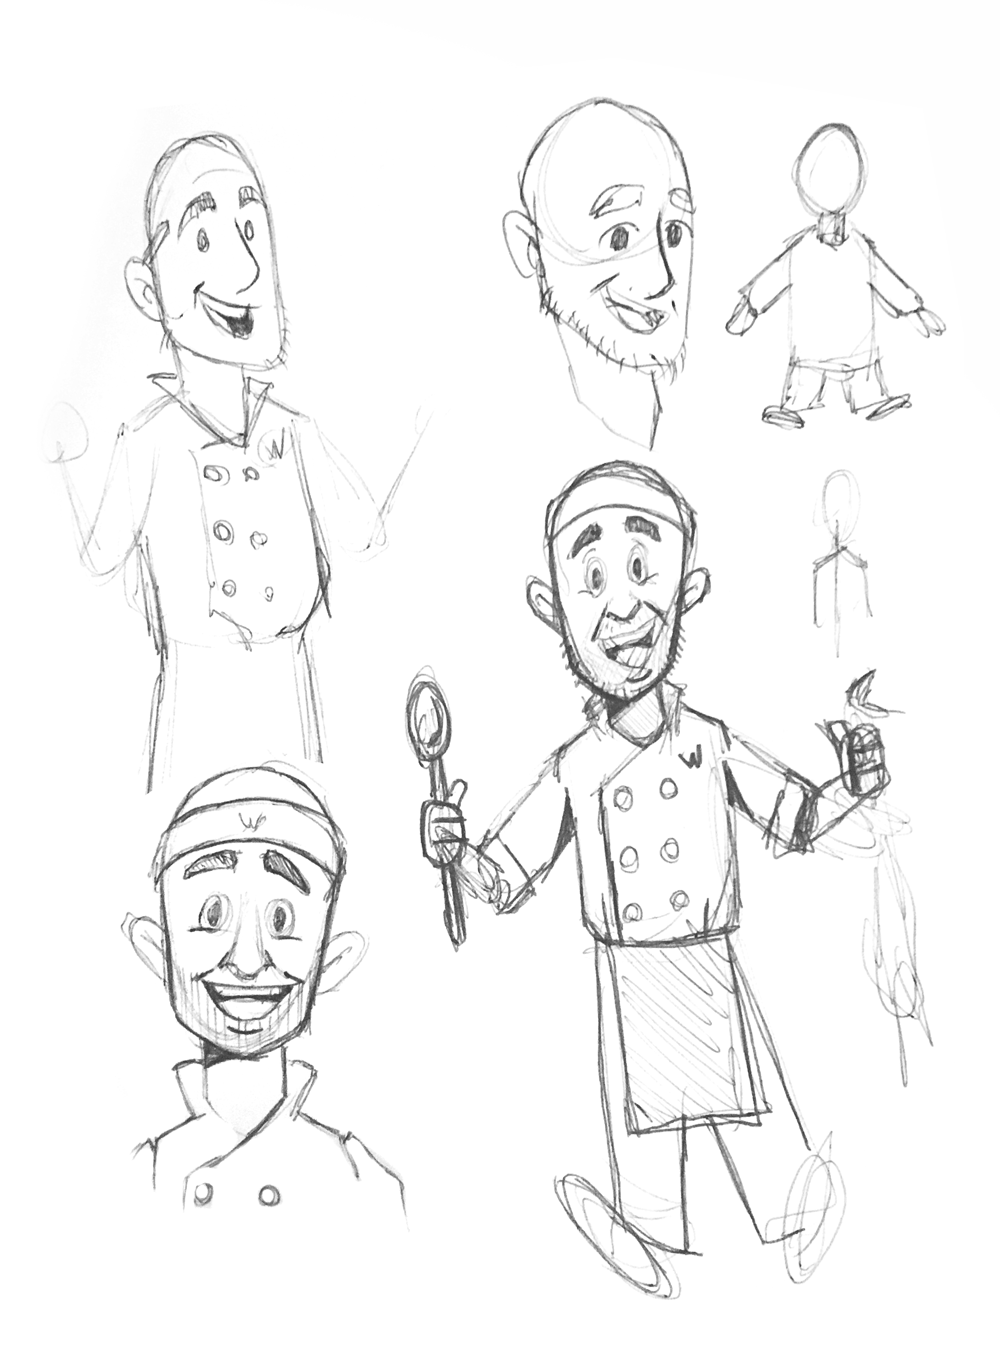 TWH_ChefMax_sketches.png